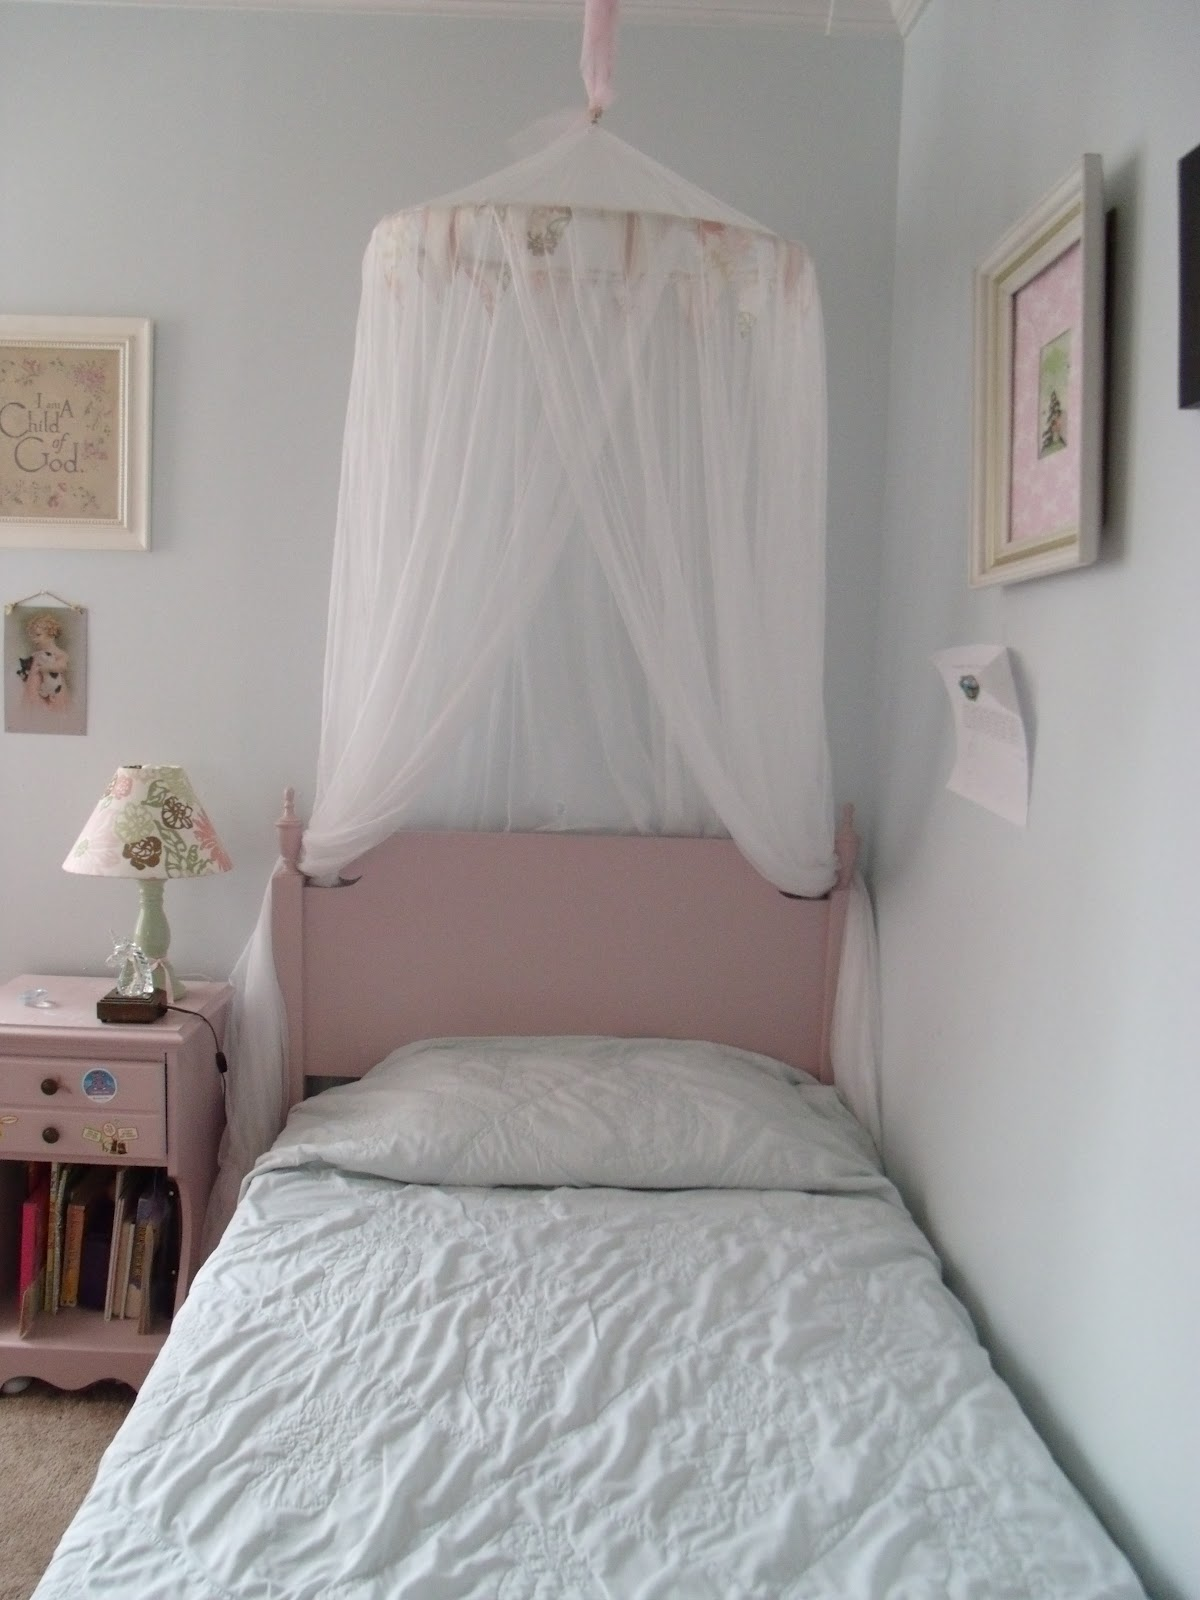 Reclaim Renew Remodel Shabby Chic Style Bed Canopy